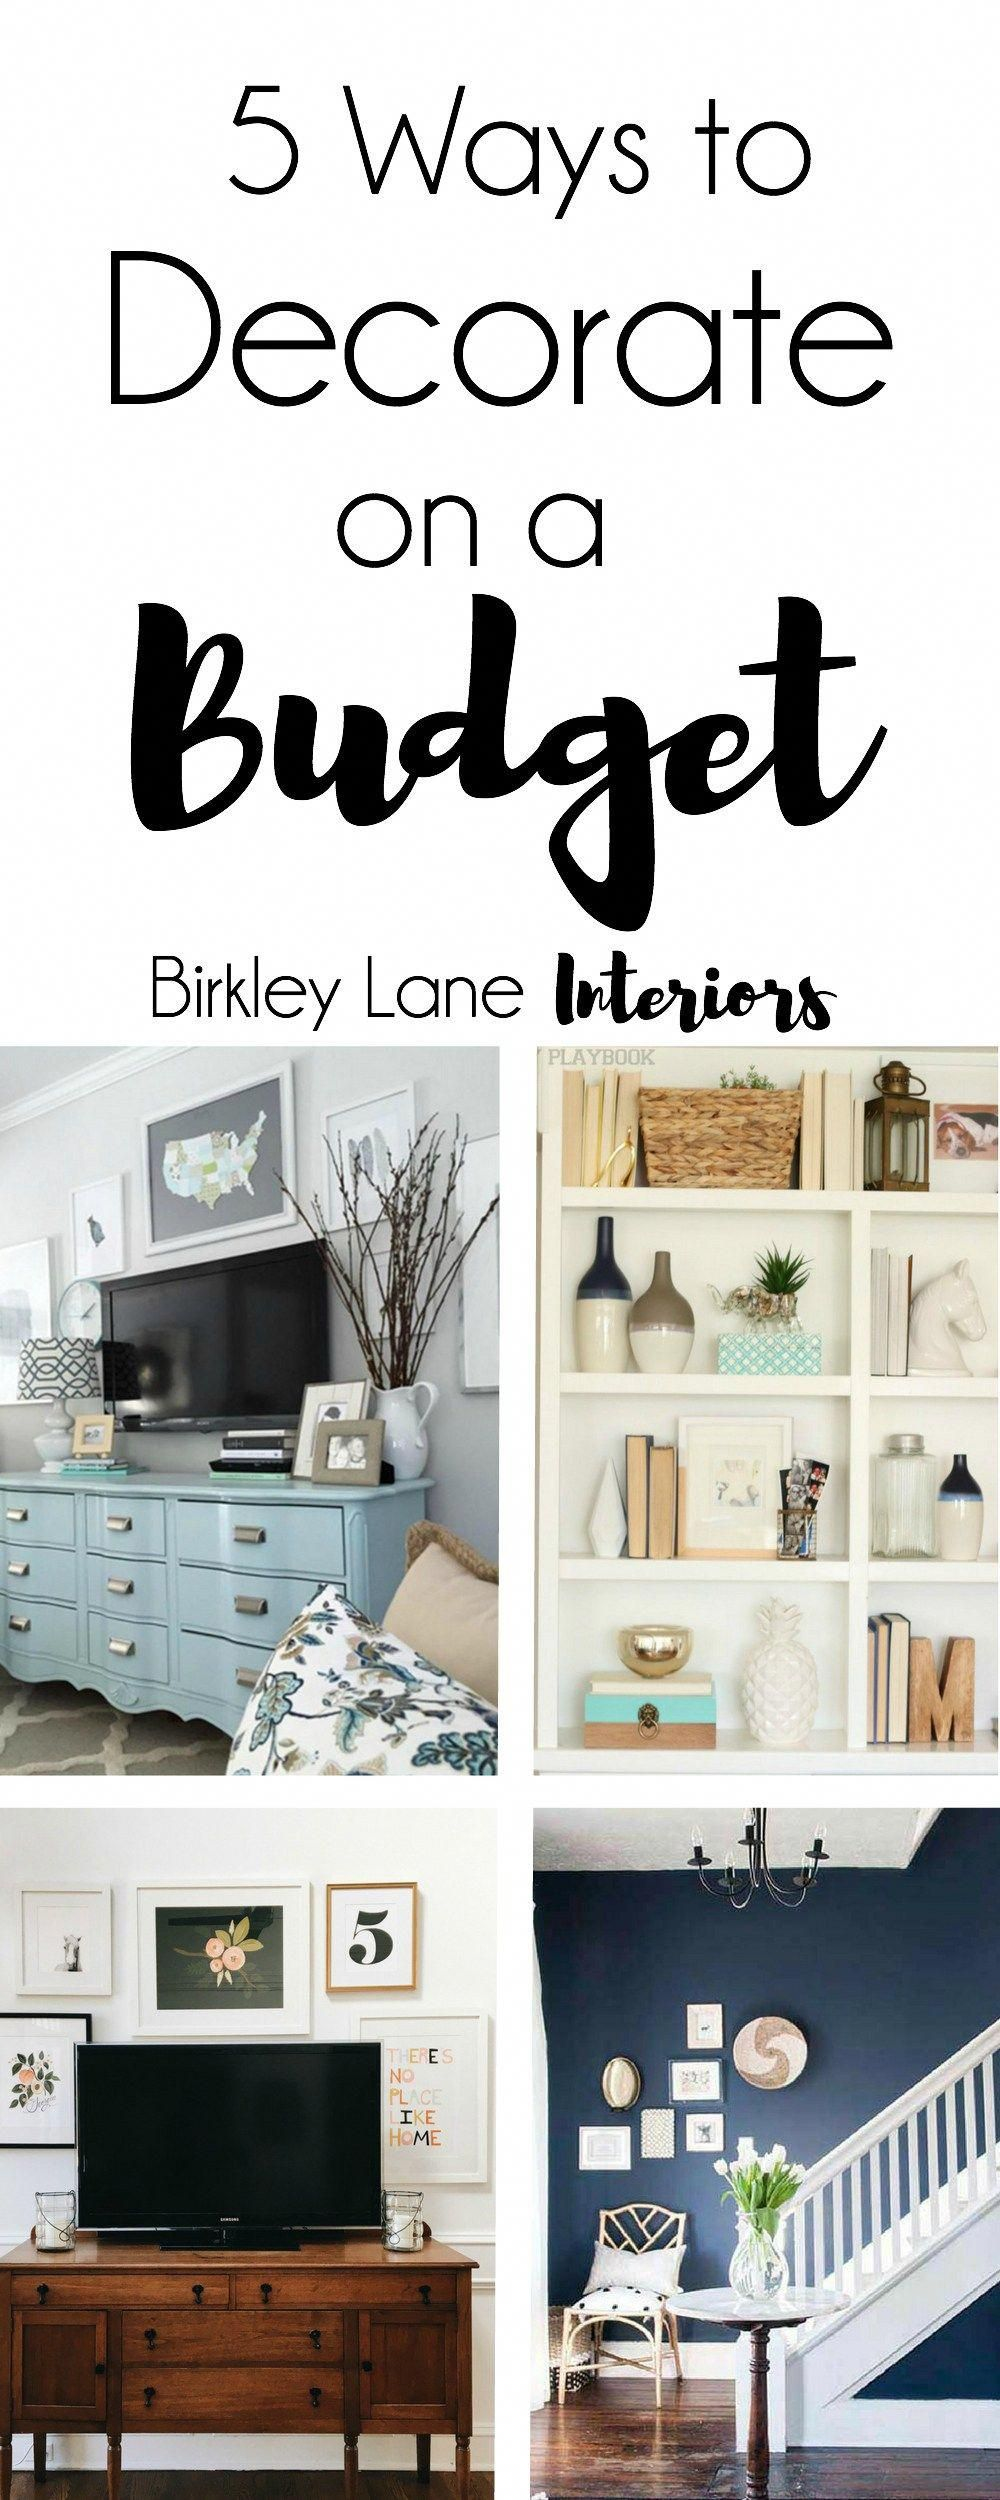 Sincere Empowered Affordable Home Decor Full Report Apartment Decorating On A Budget Decorating On A Budget Home Decor Online